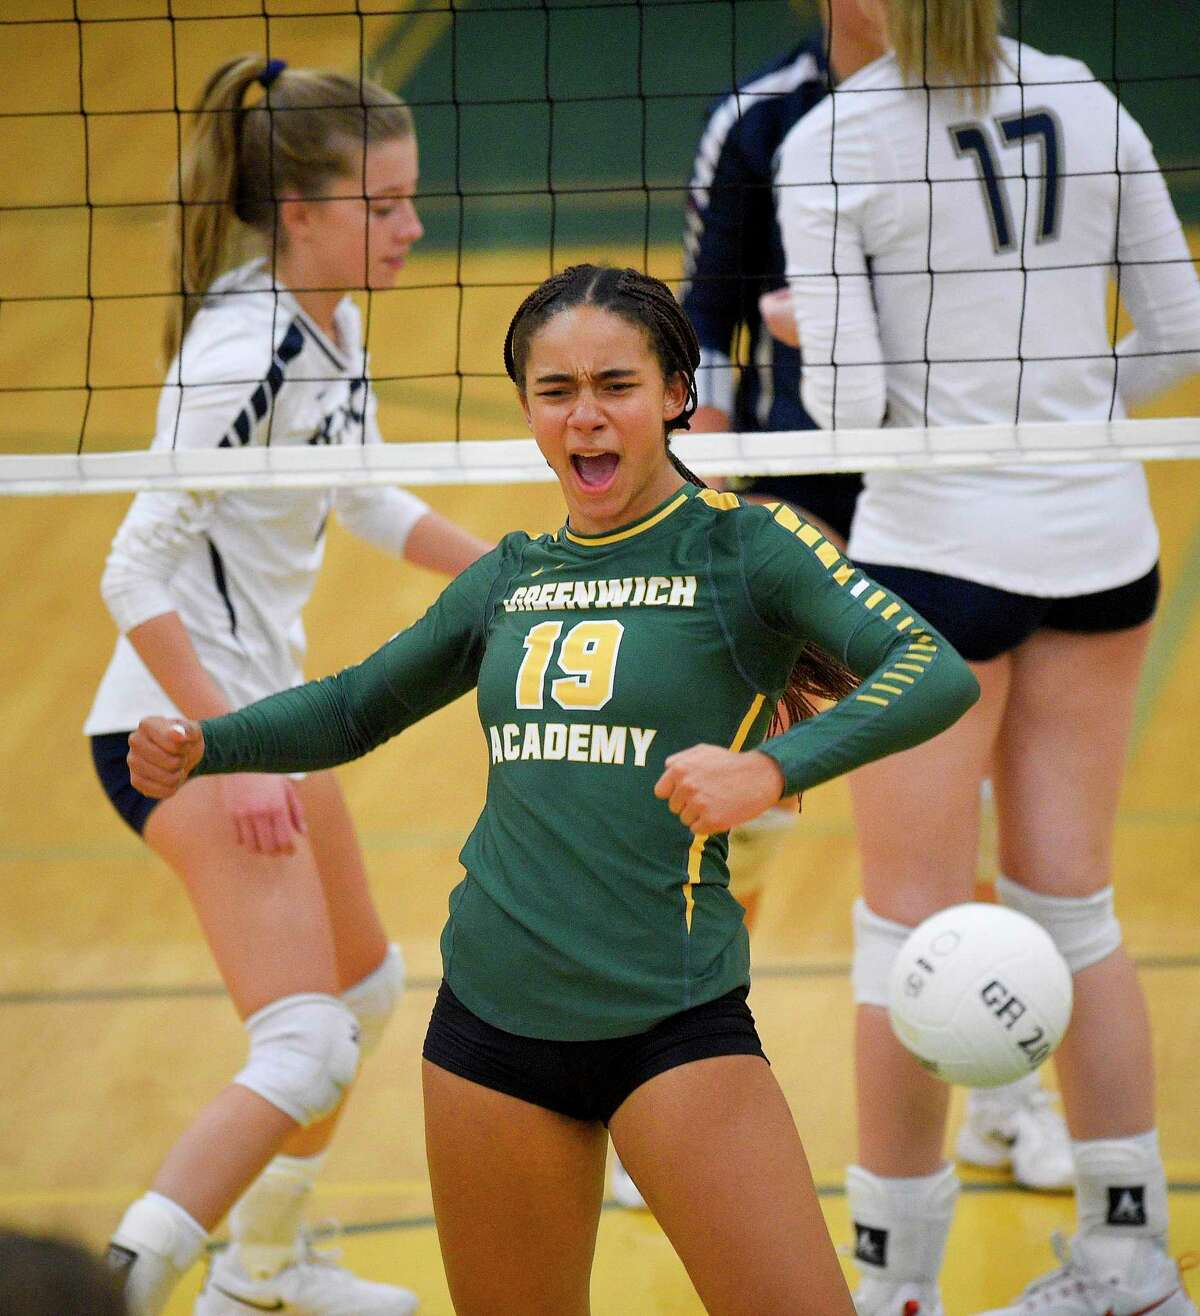 Greenwich Academy's Alexandra Trofort (19) celebrates a point in the first set against King in a FAA Volleyball semifinal match at Greenwich Academy on Nov. 6, 2019 in Greenwich, Connecticut.